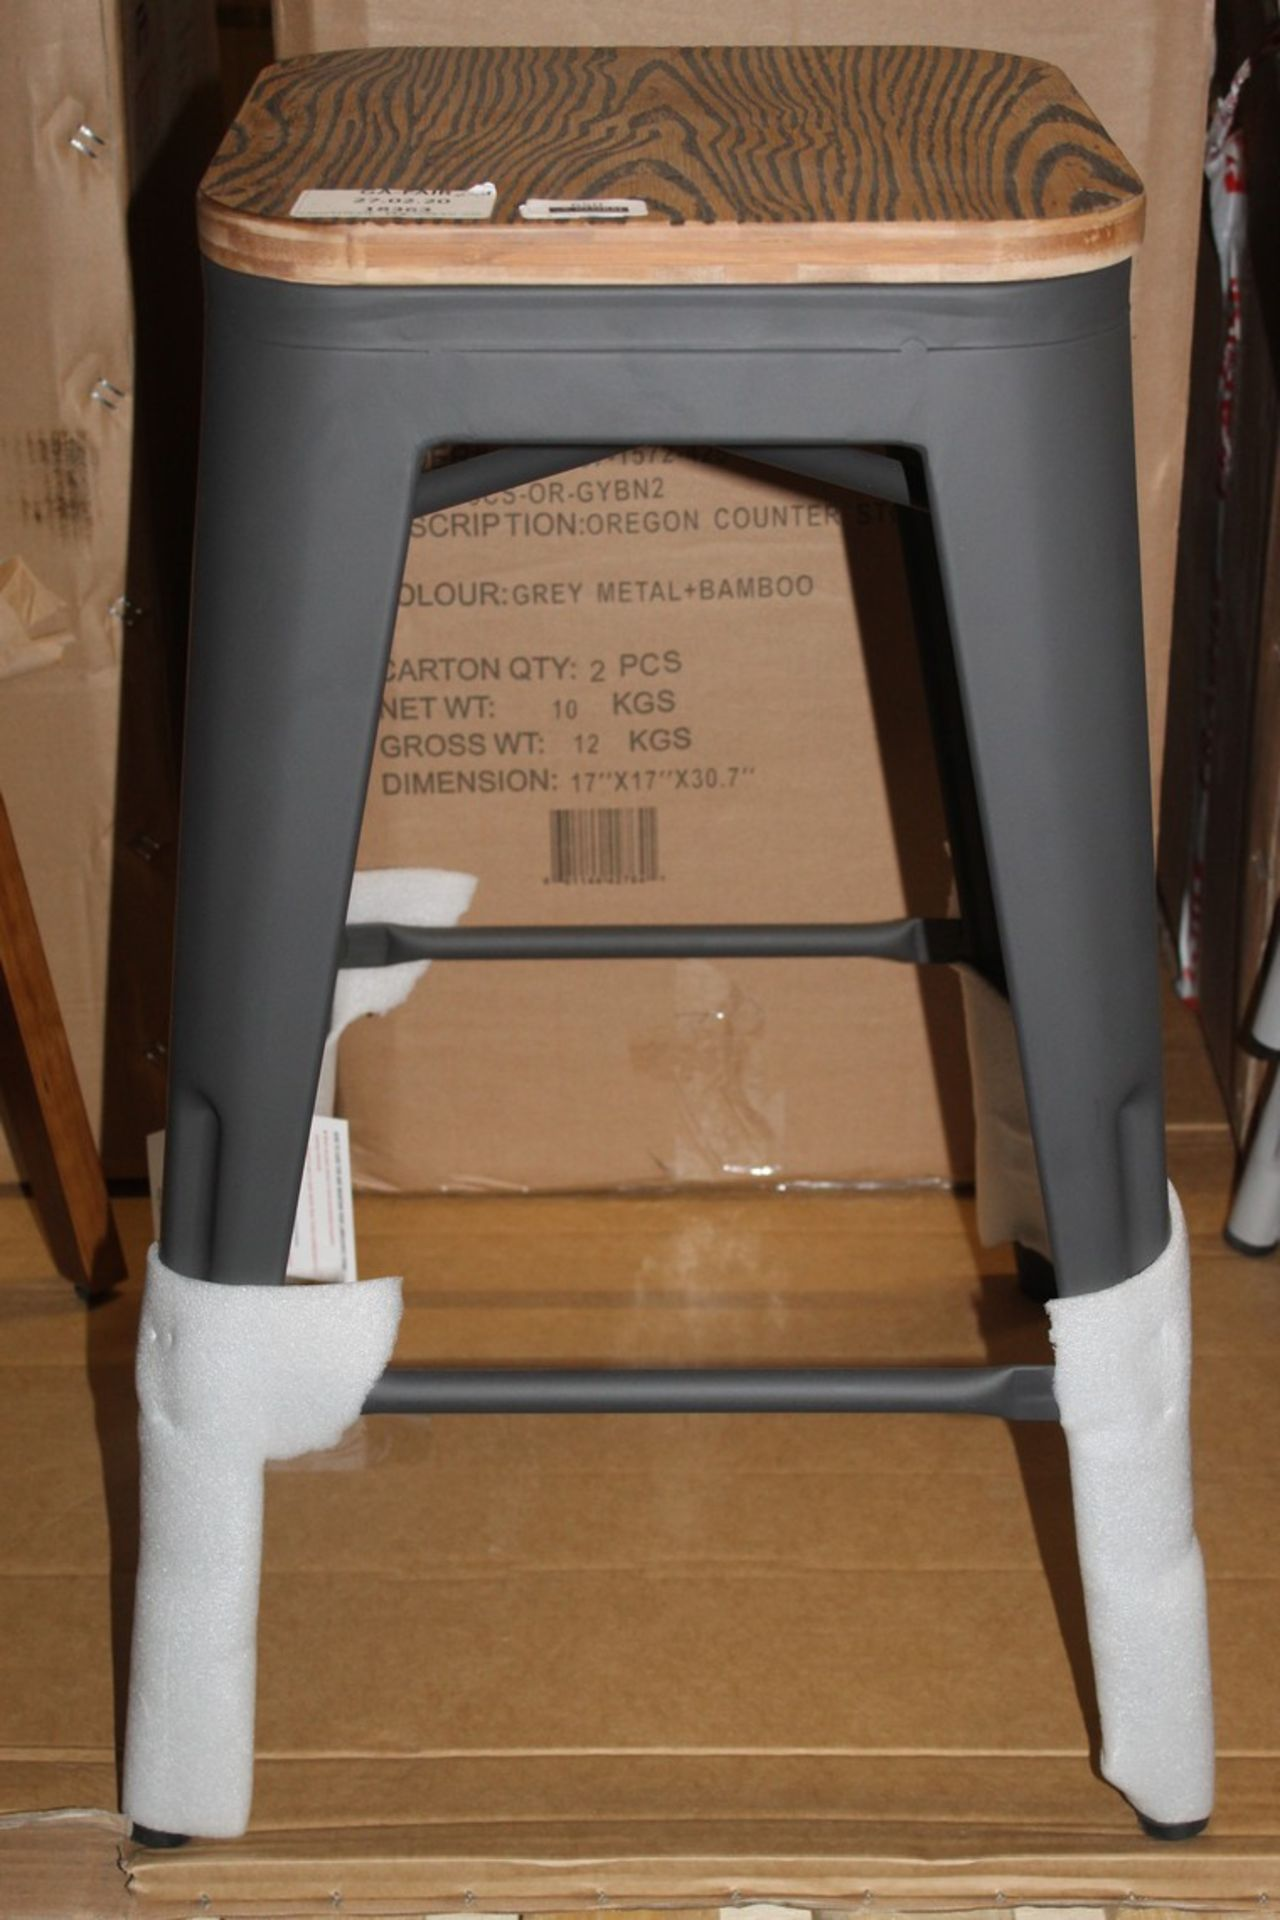 Los 650 - Boxed Claremont Industrial Look Metal And Wooden Barstools RRP £75 Each (18363) (Appraisals